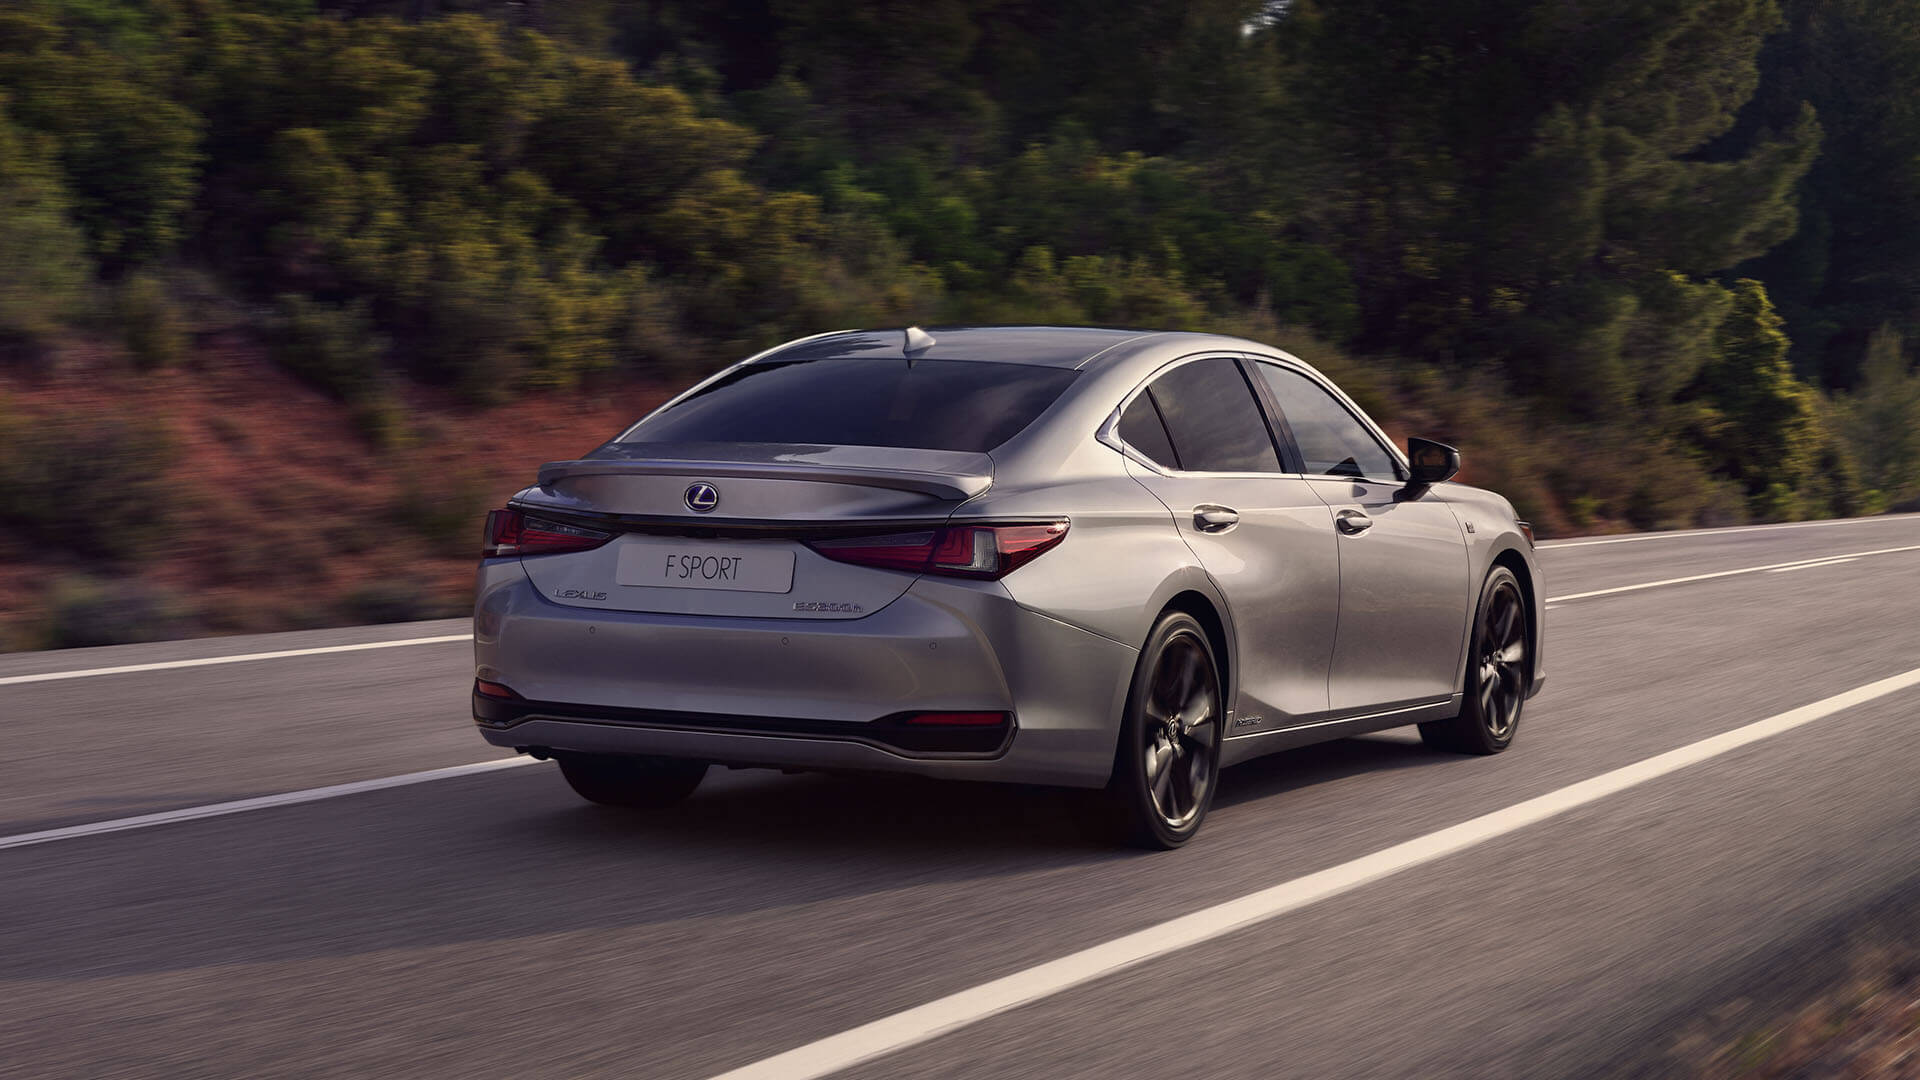 2022 lexus es experience exterior back coupe like silhouette